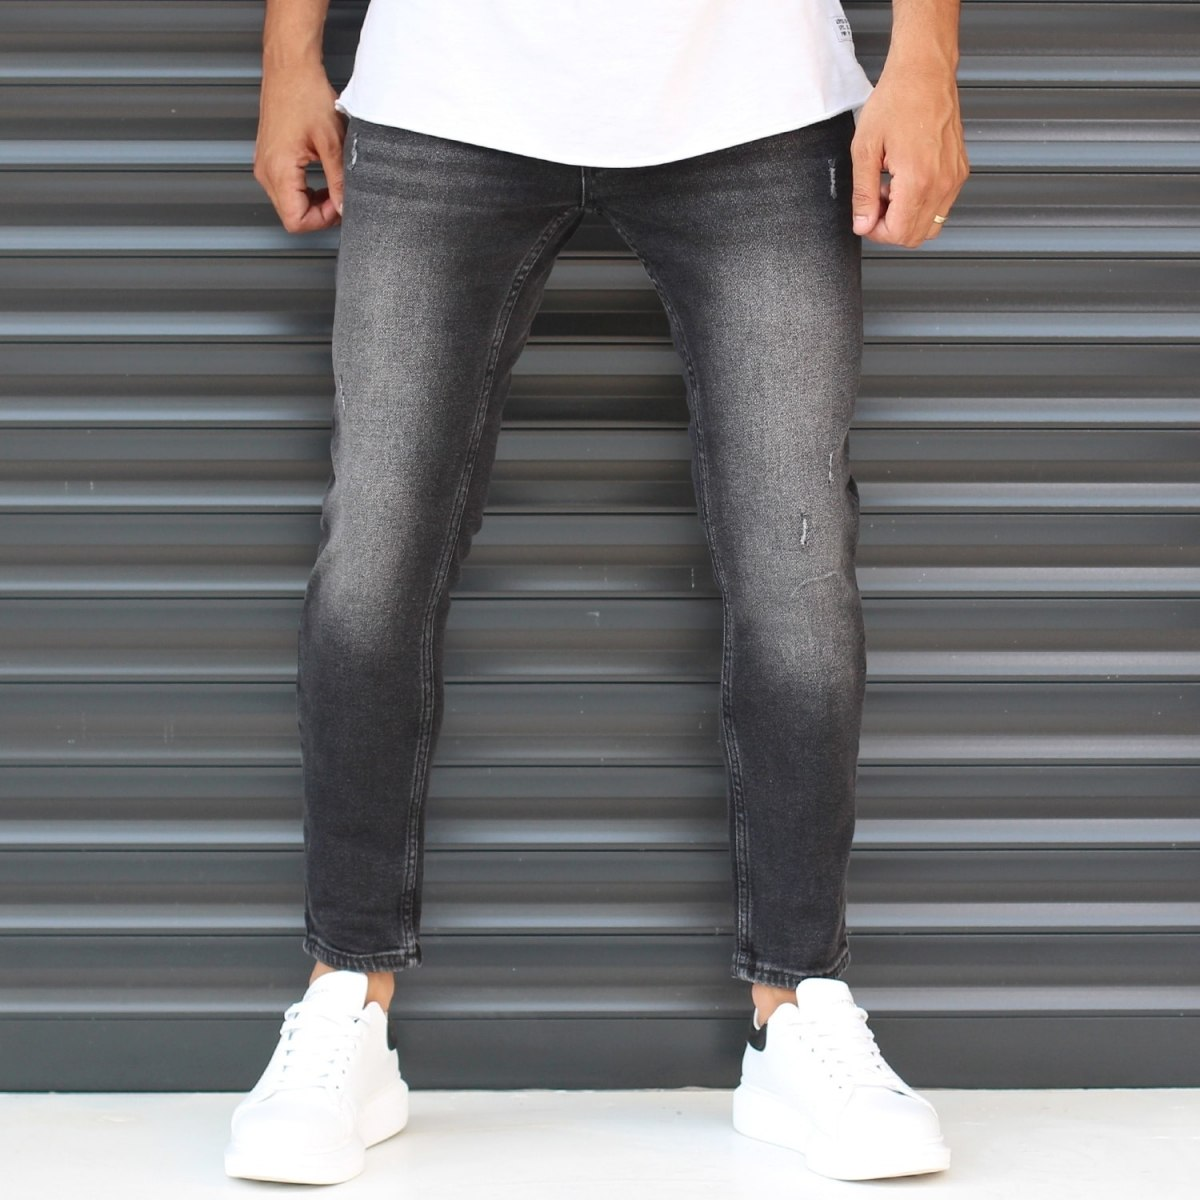 Men's Basic Stonewashed Jeans In Black Mv Premium Brand - 2